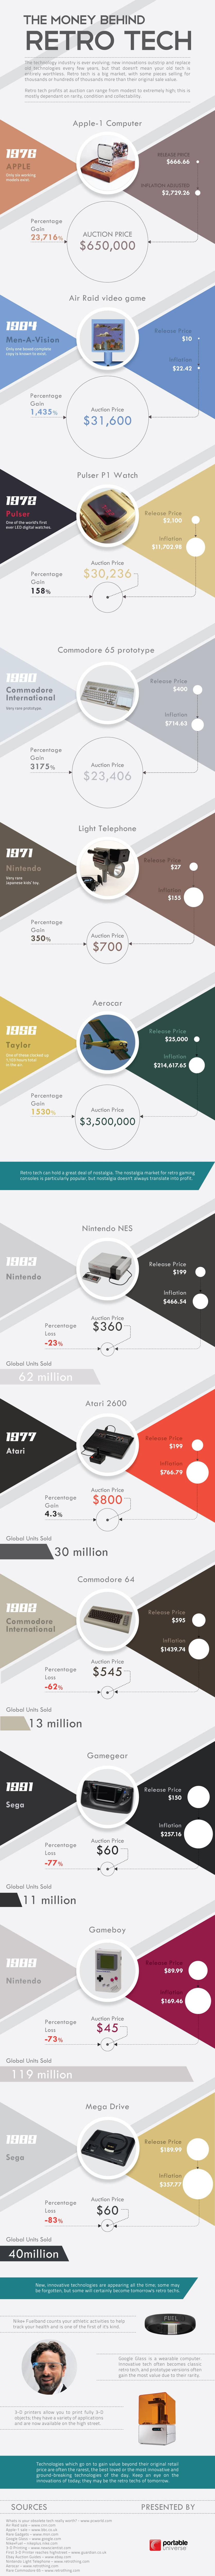 Retro Tech And What It's Worth Today [Infographic]